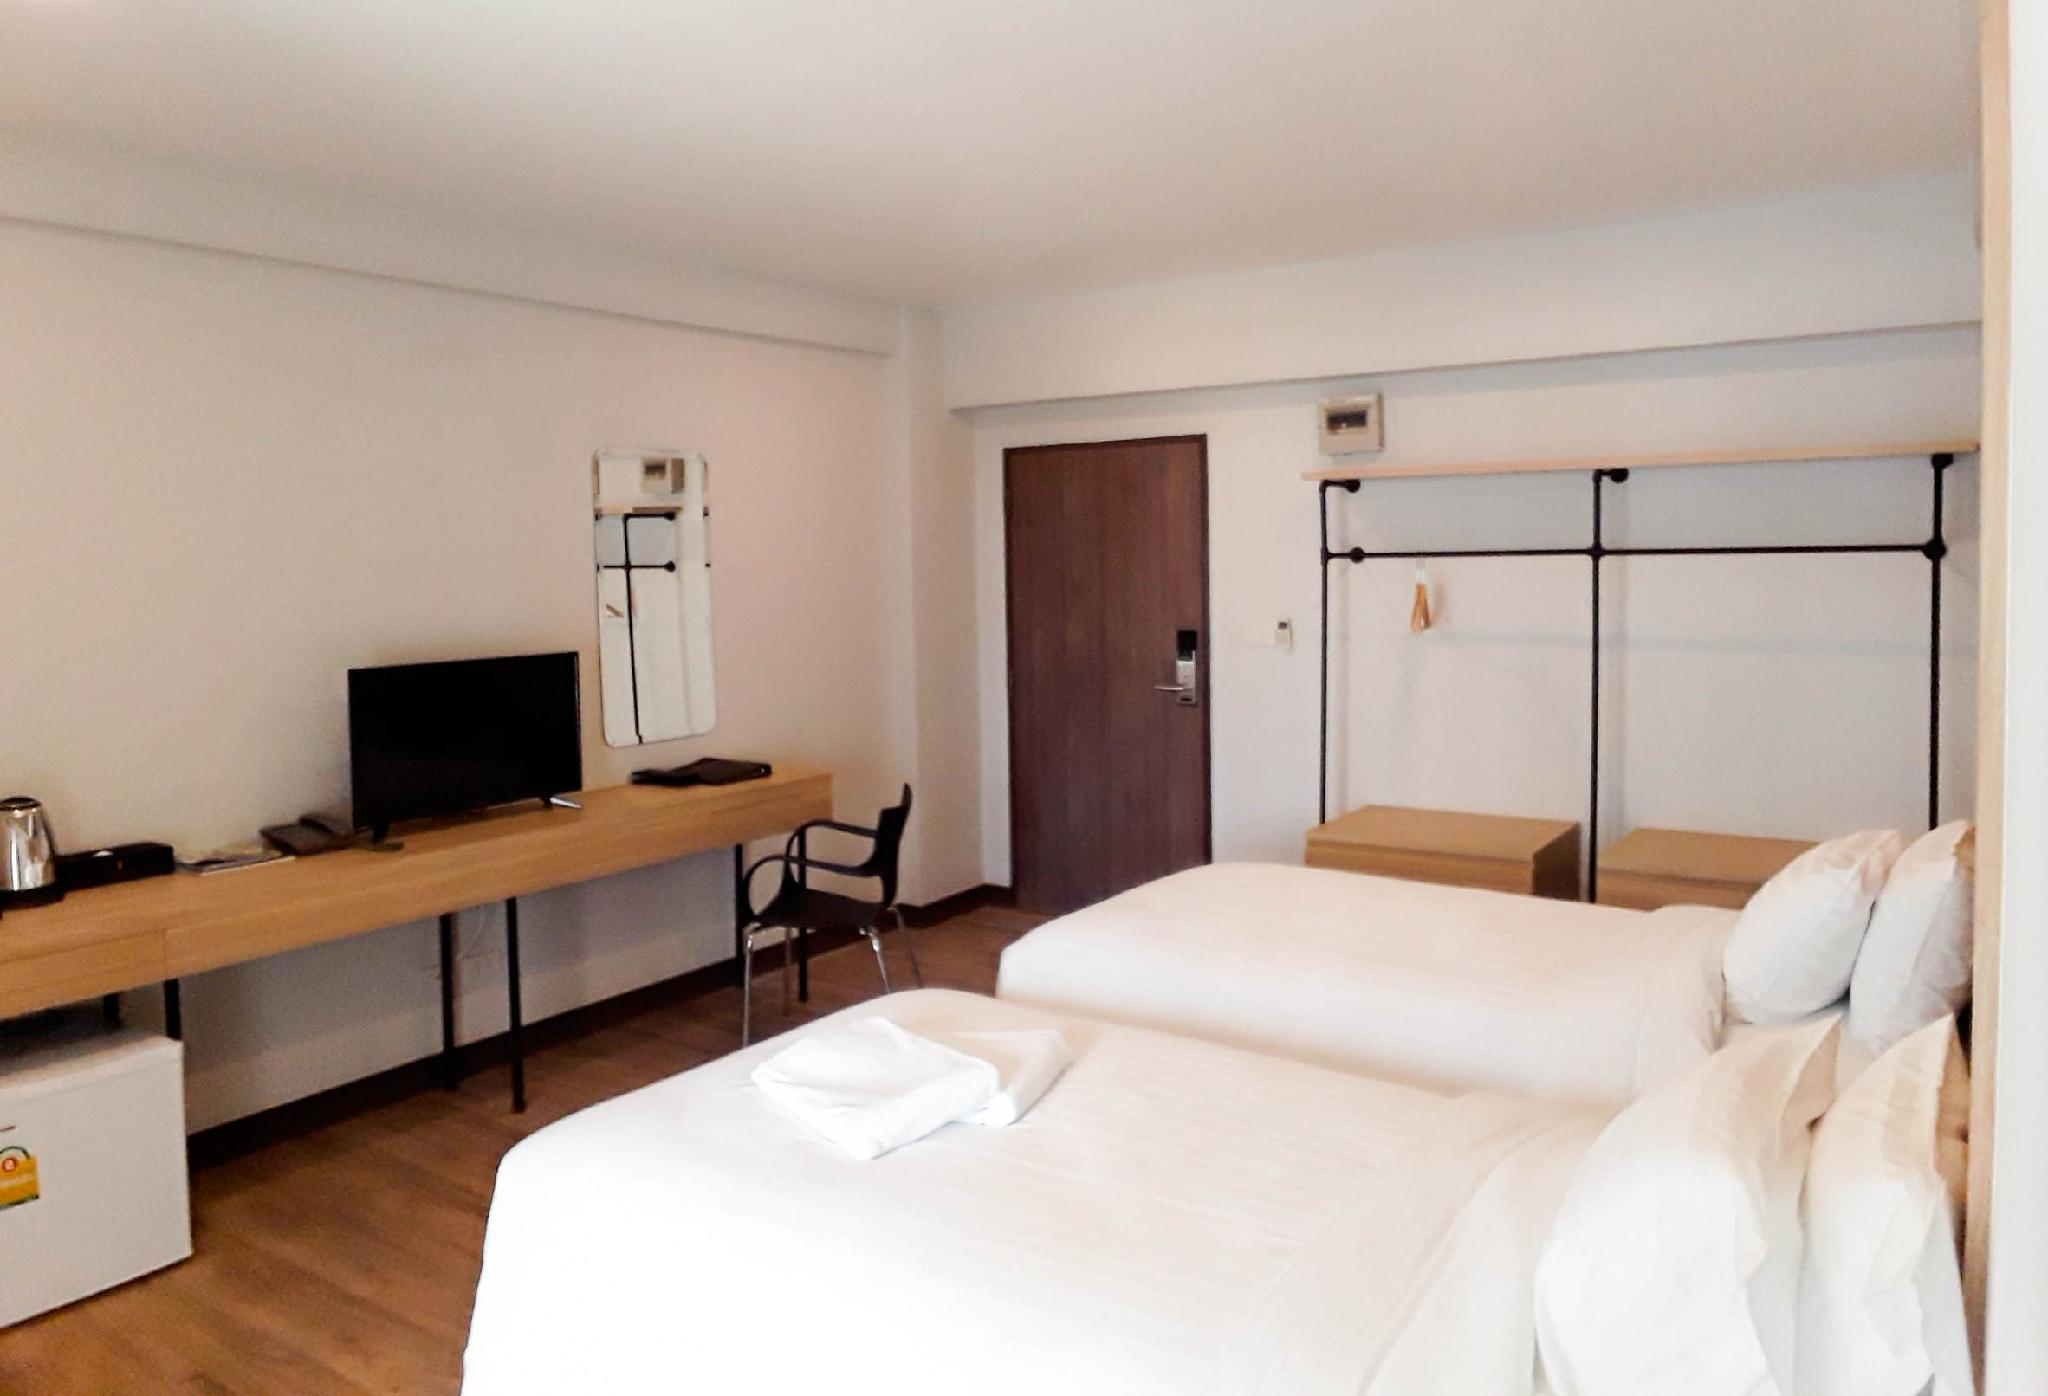 Boutique Hotel Don Mueang Reviews